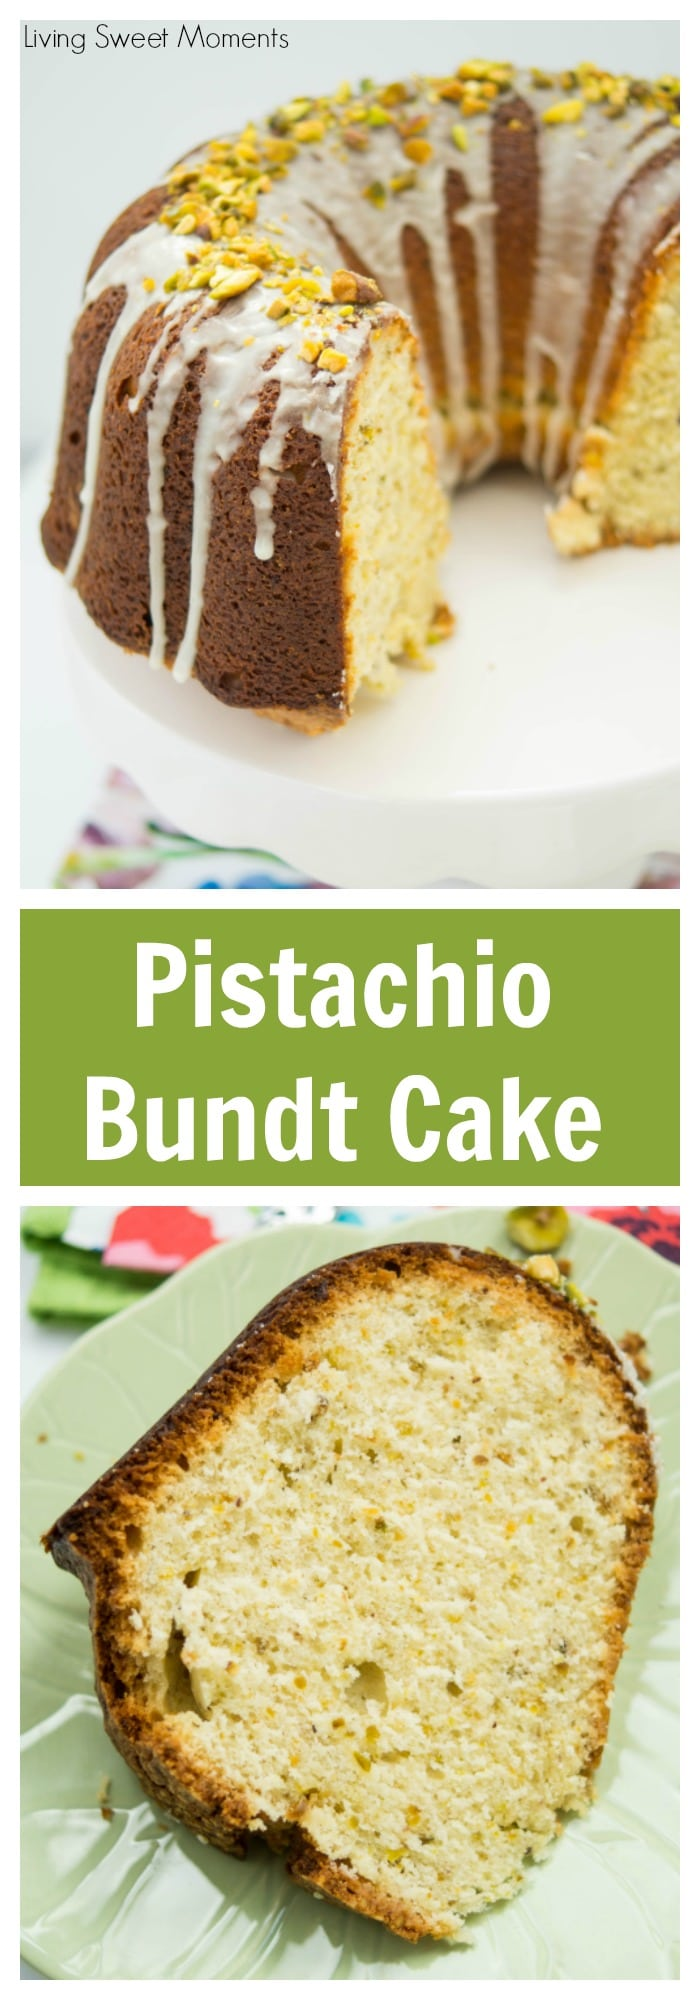 This delicious Pistachio Bundt Cake Recipe is made entirely from scratch and is topped with a sweet vanilla icing. Perfect for dessert, brunch, or anytime!